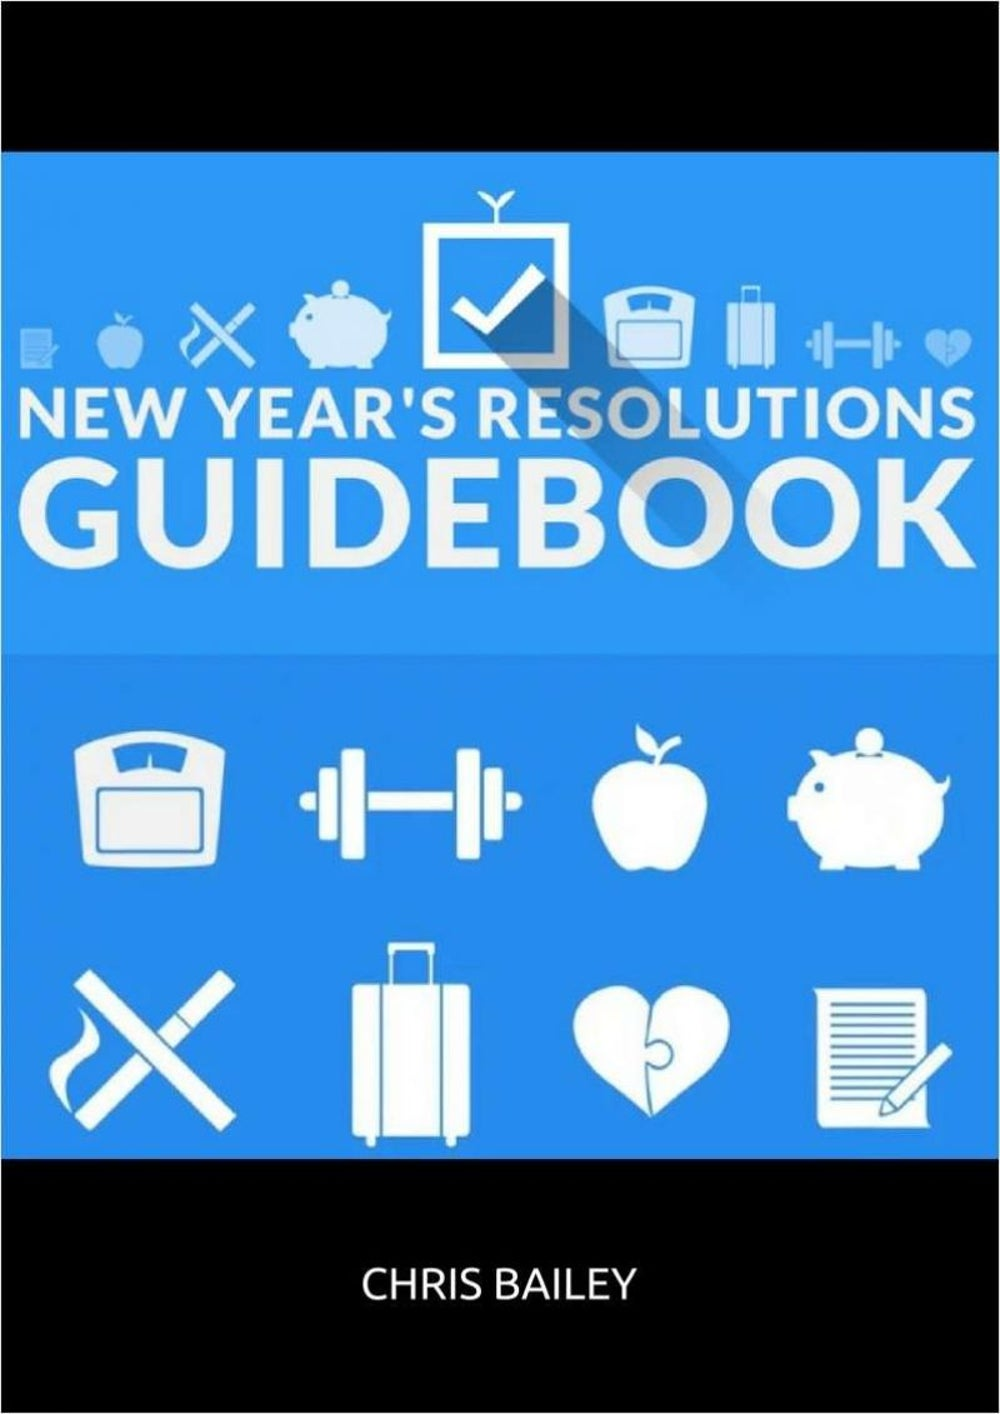 New Year's Resolution Guidebook